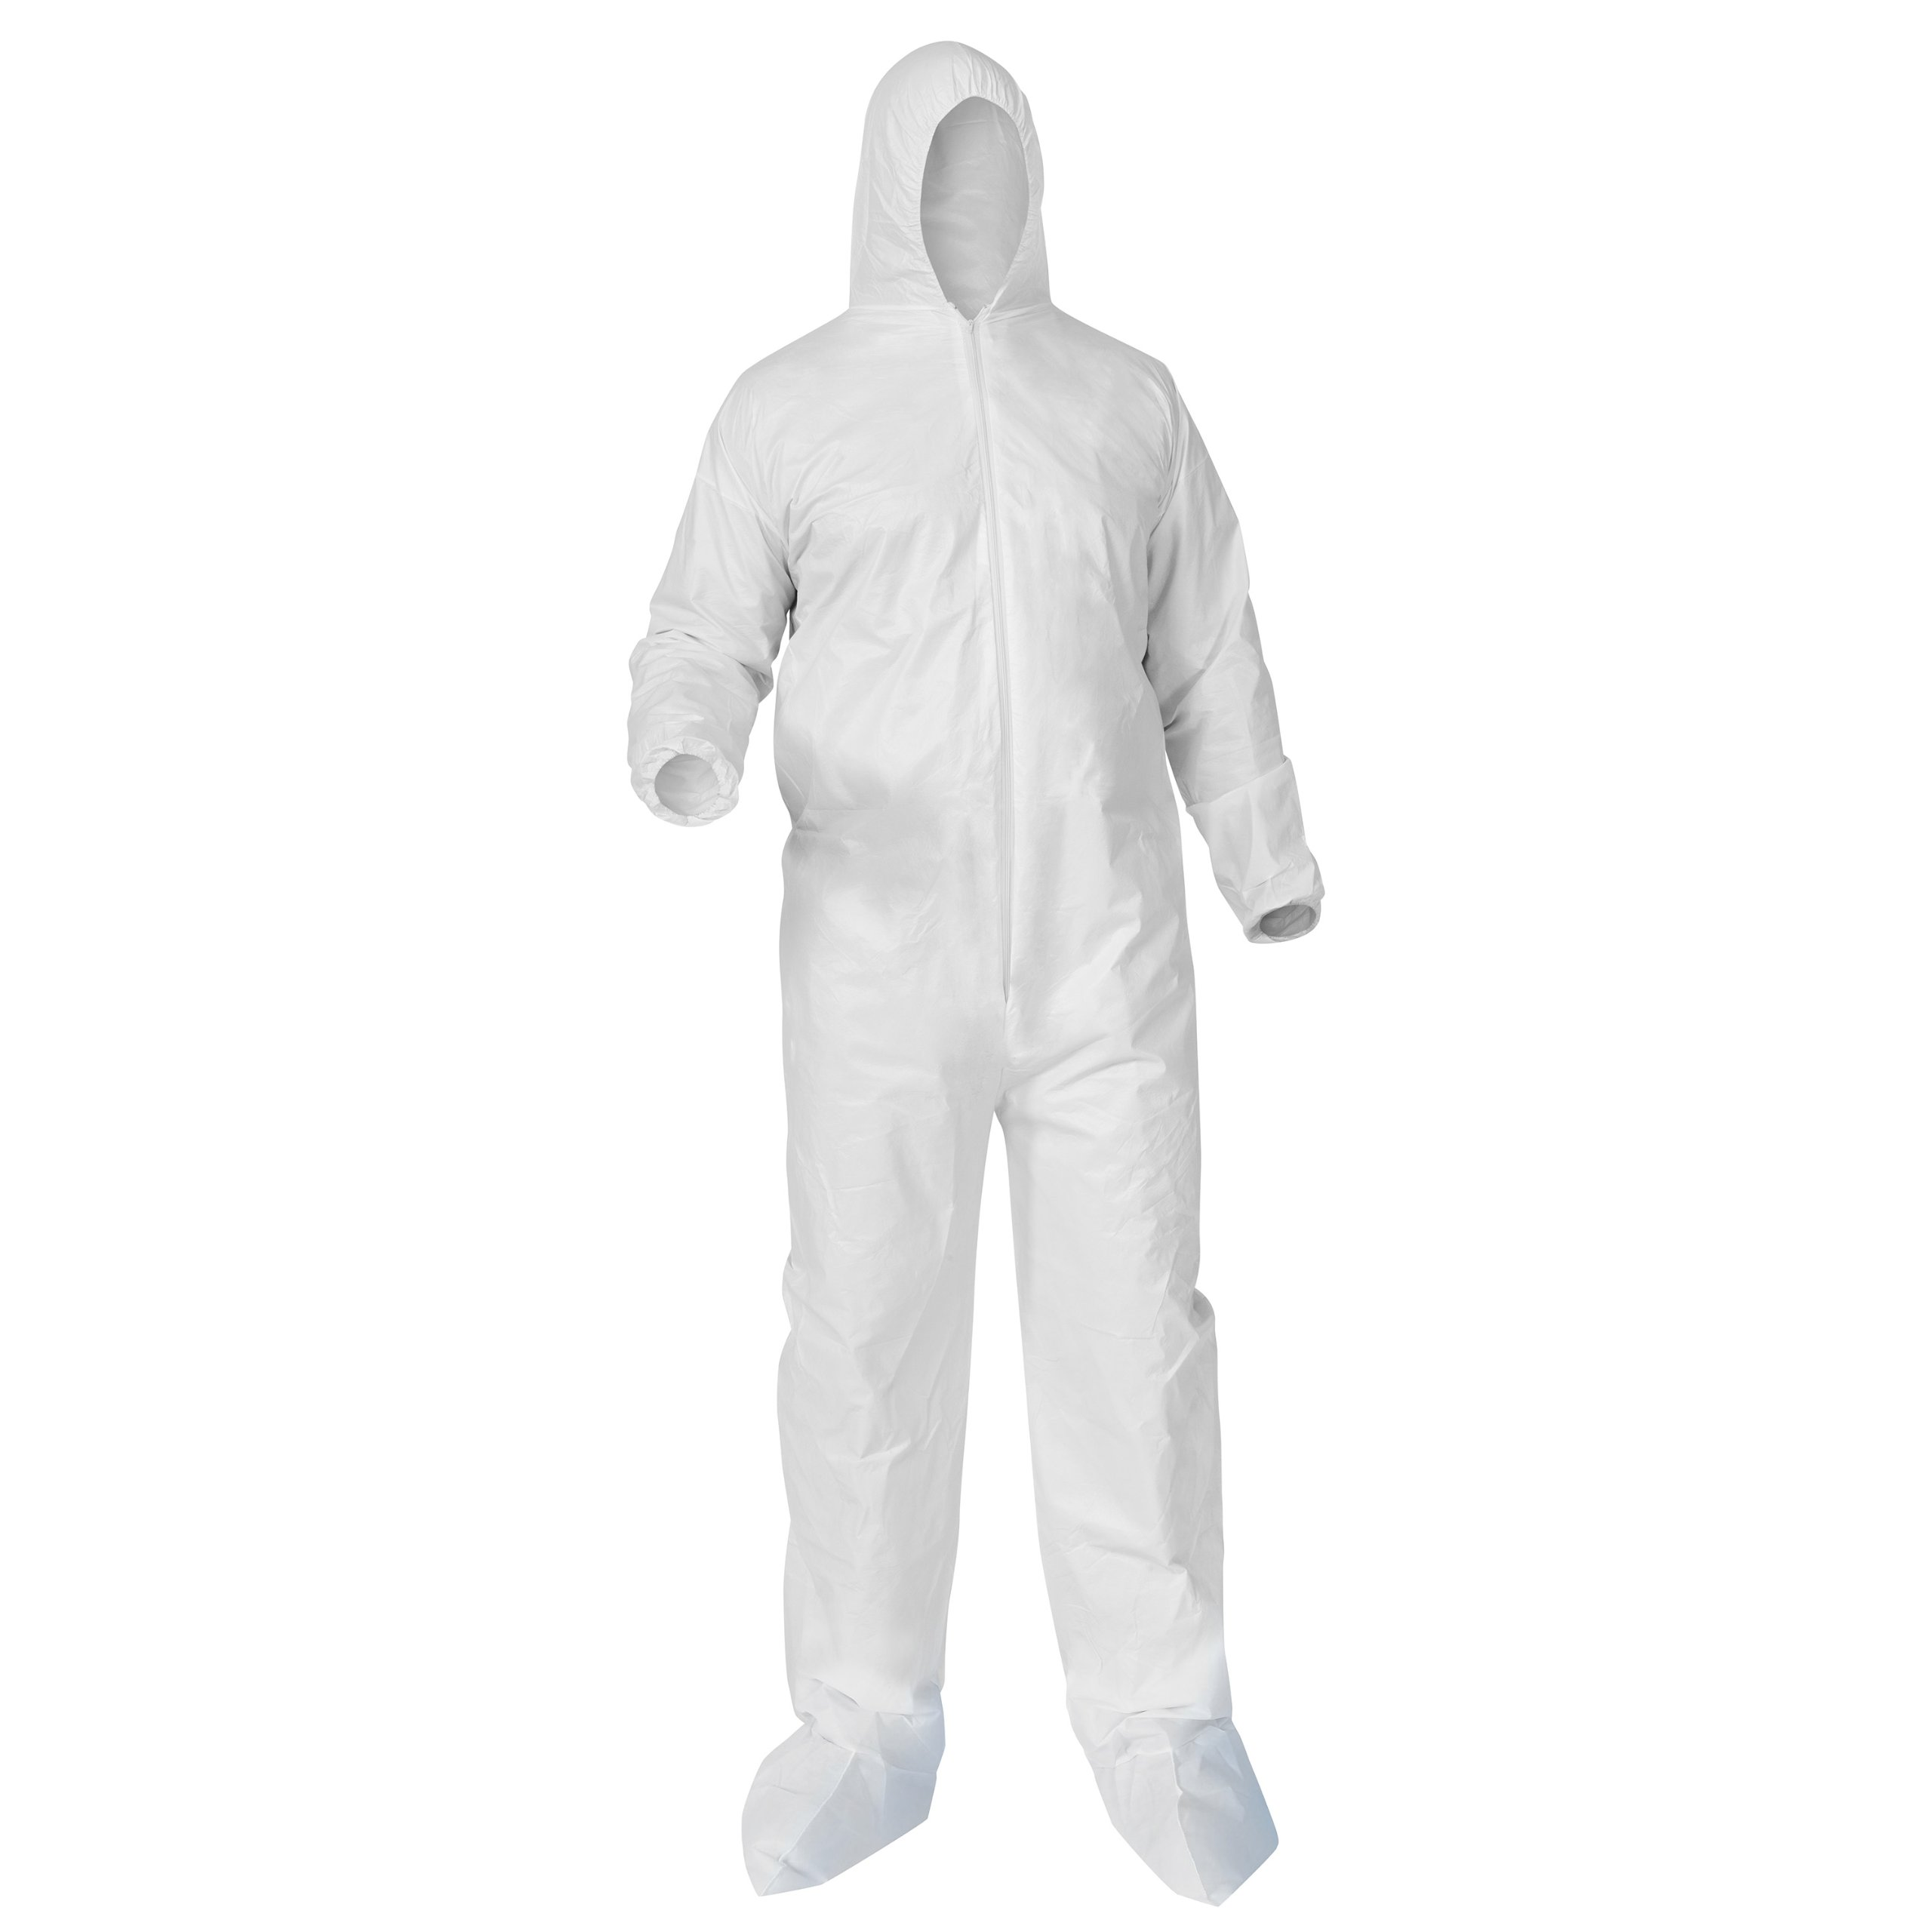 Kimberly-Clark 38951 KleenGuard A35 Liquid and Particle Protection Coverall with Elastic Wrists and Ankles, Hooded, Booted, Disposable, White (Pack of 25)